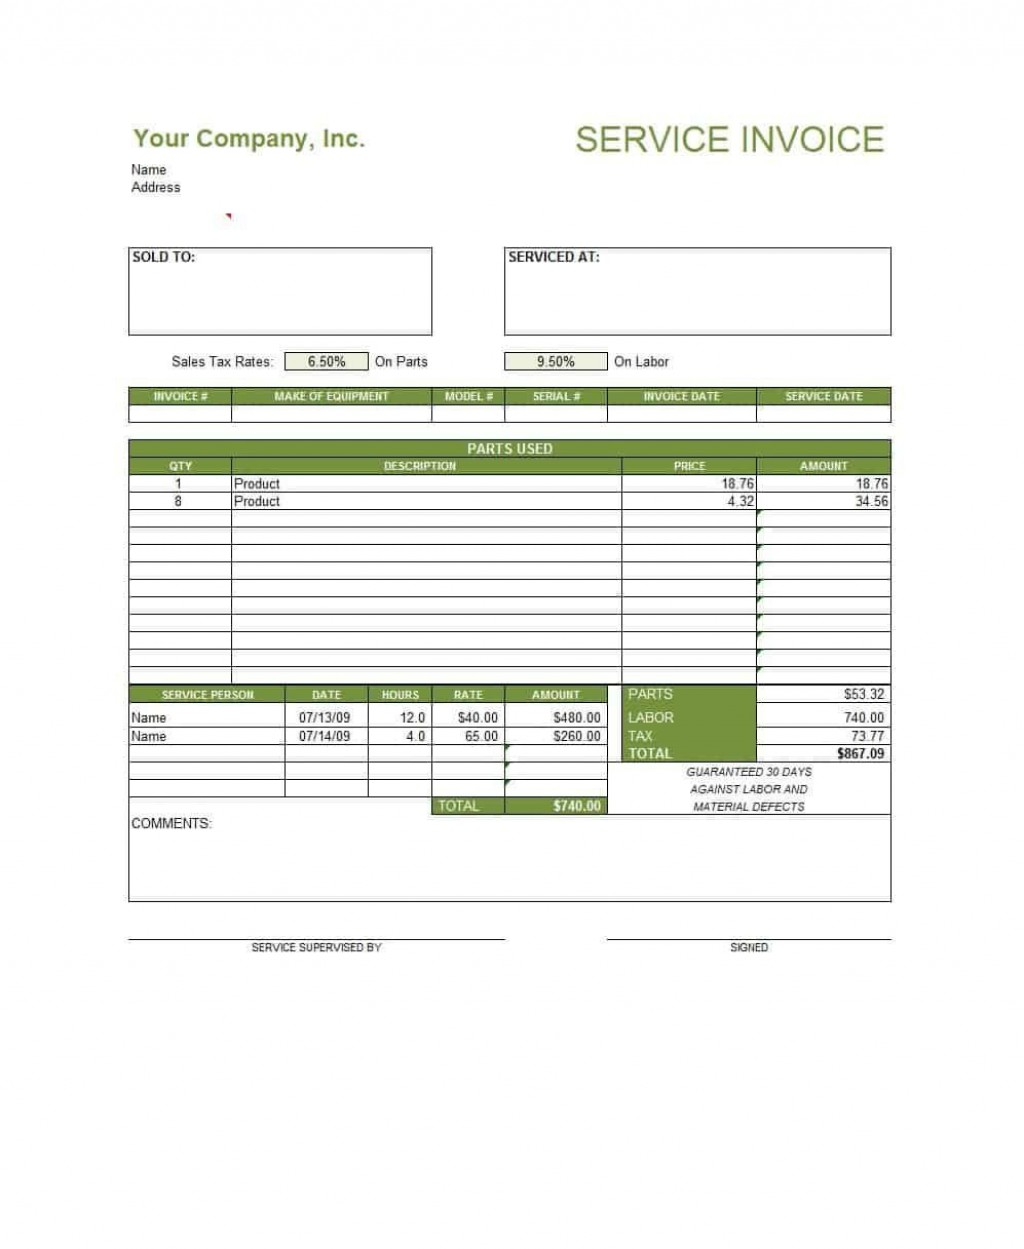 003 Excellent Service Invoice Template Free Highest Clarity  Rendered Word Auto DownloadLarge